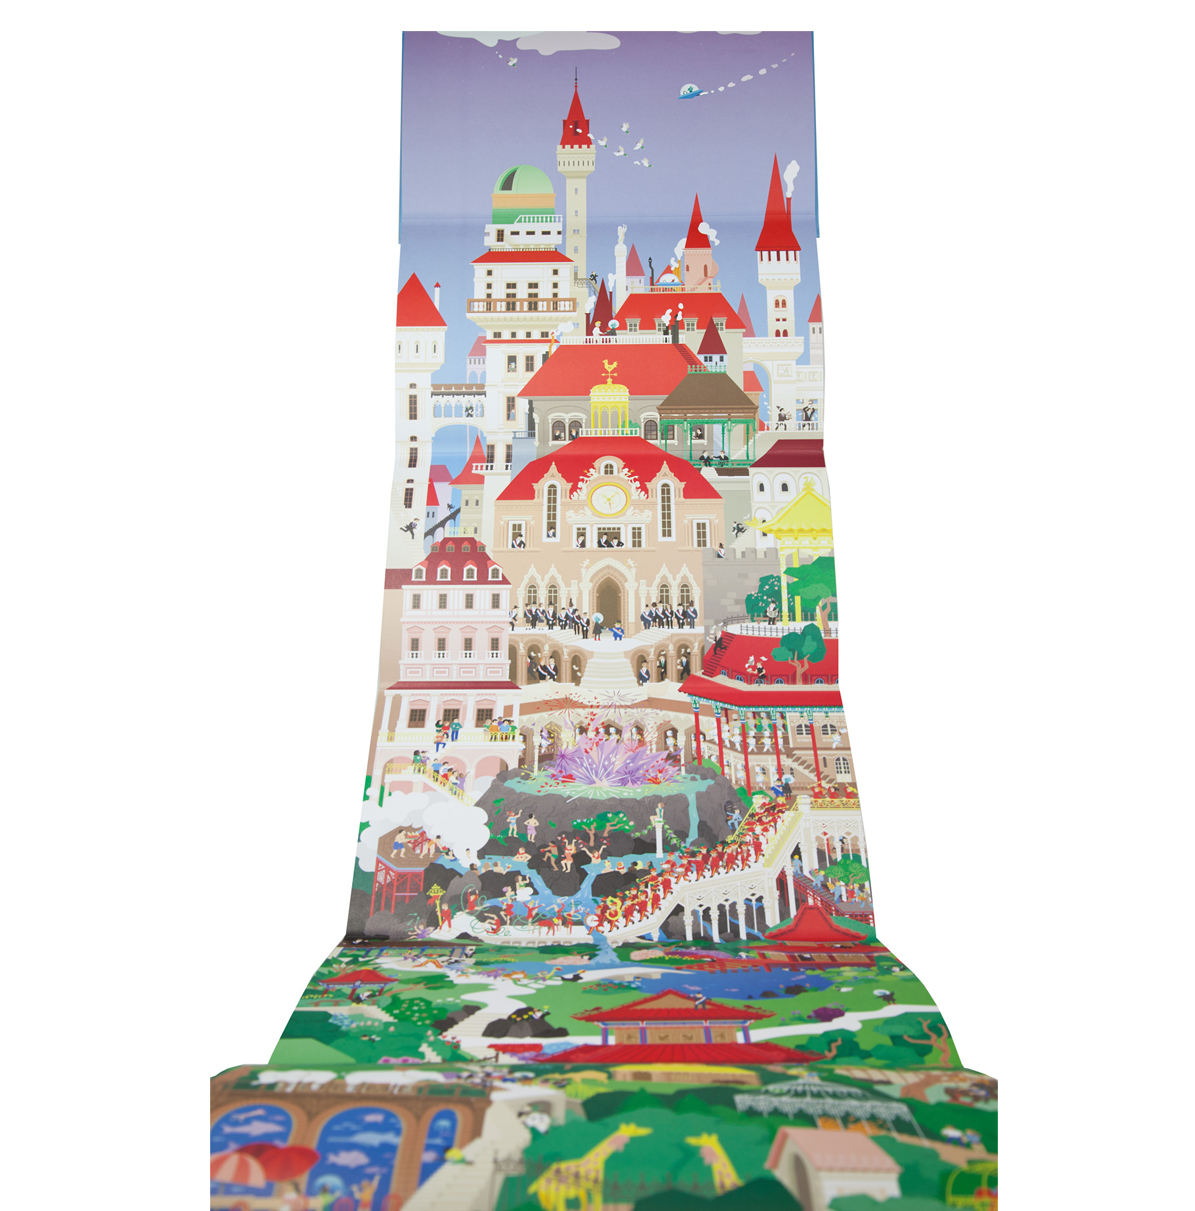 Megalopolis: a three-metre long children's story book from illustrator Cléa Dieudonné